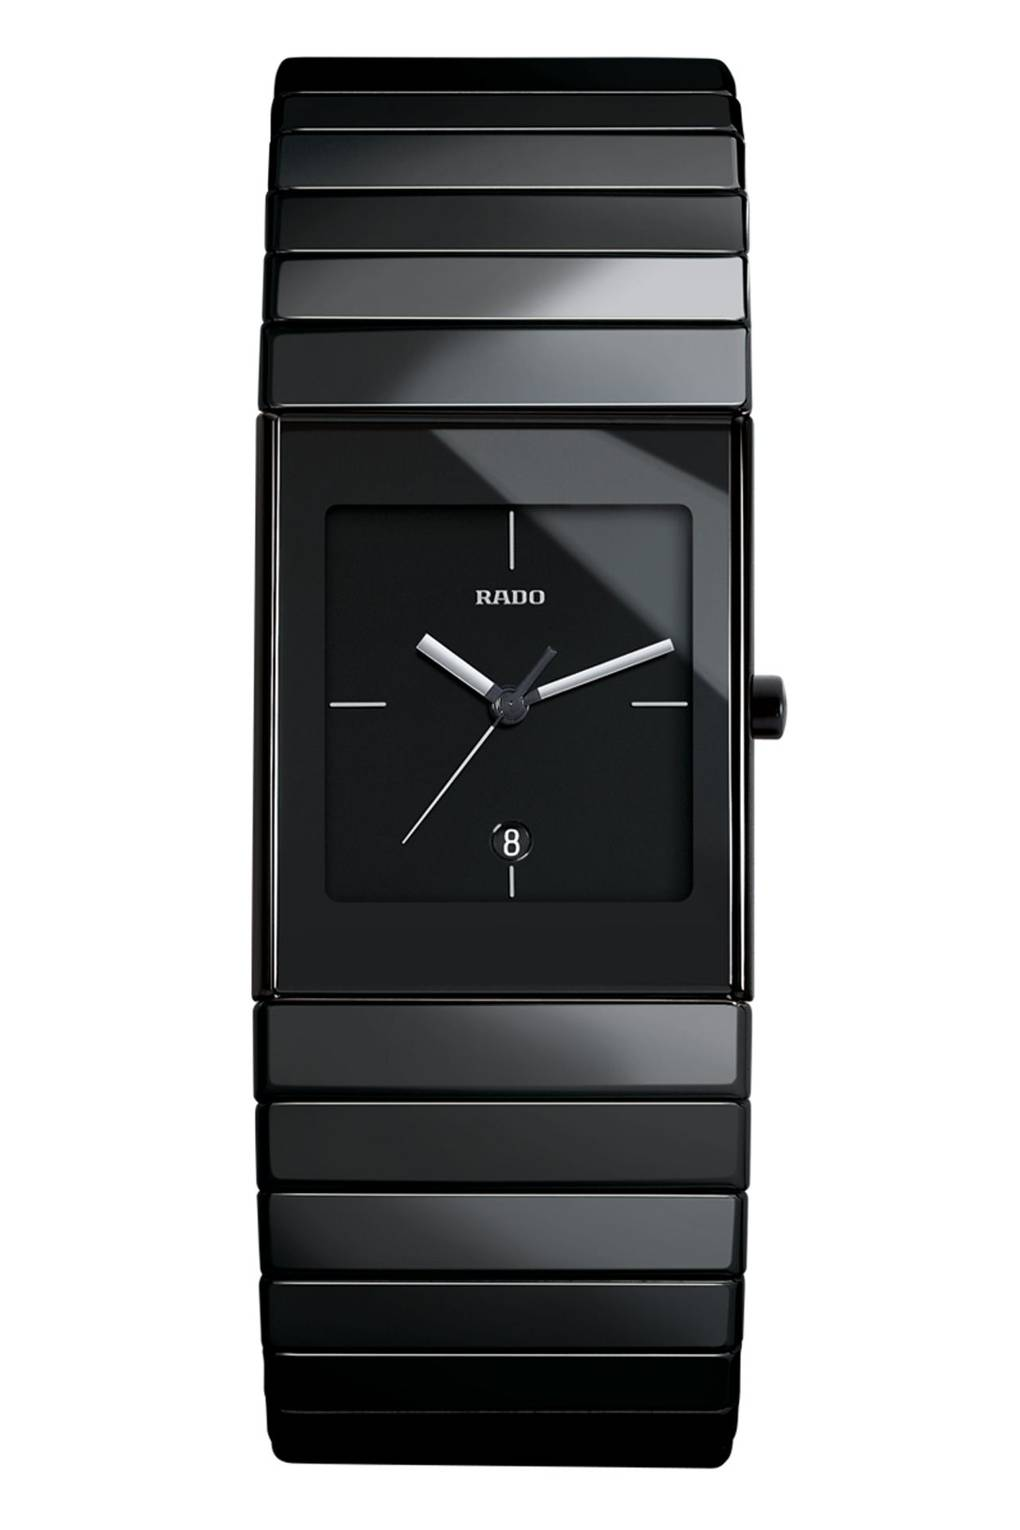 8 Of The Best Square-Faced Watches advise